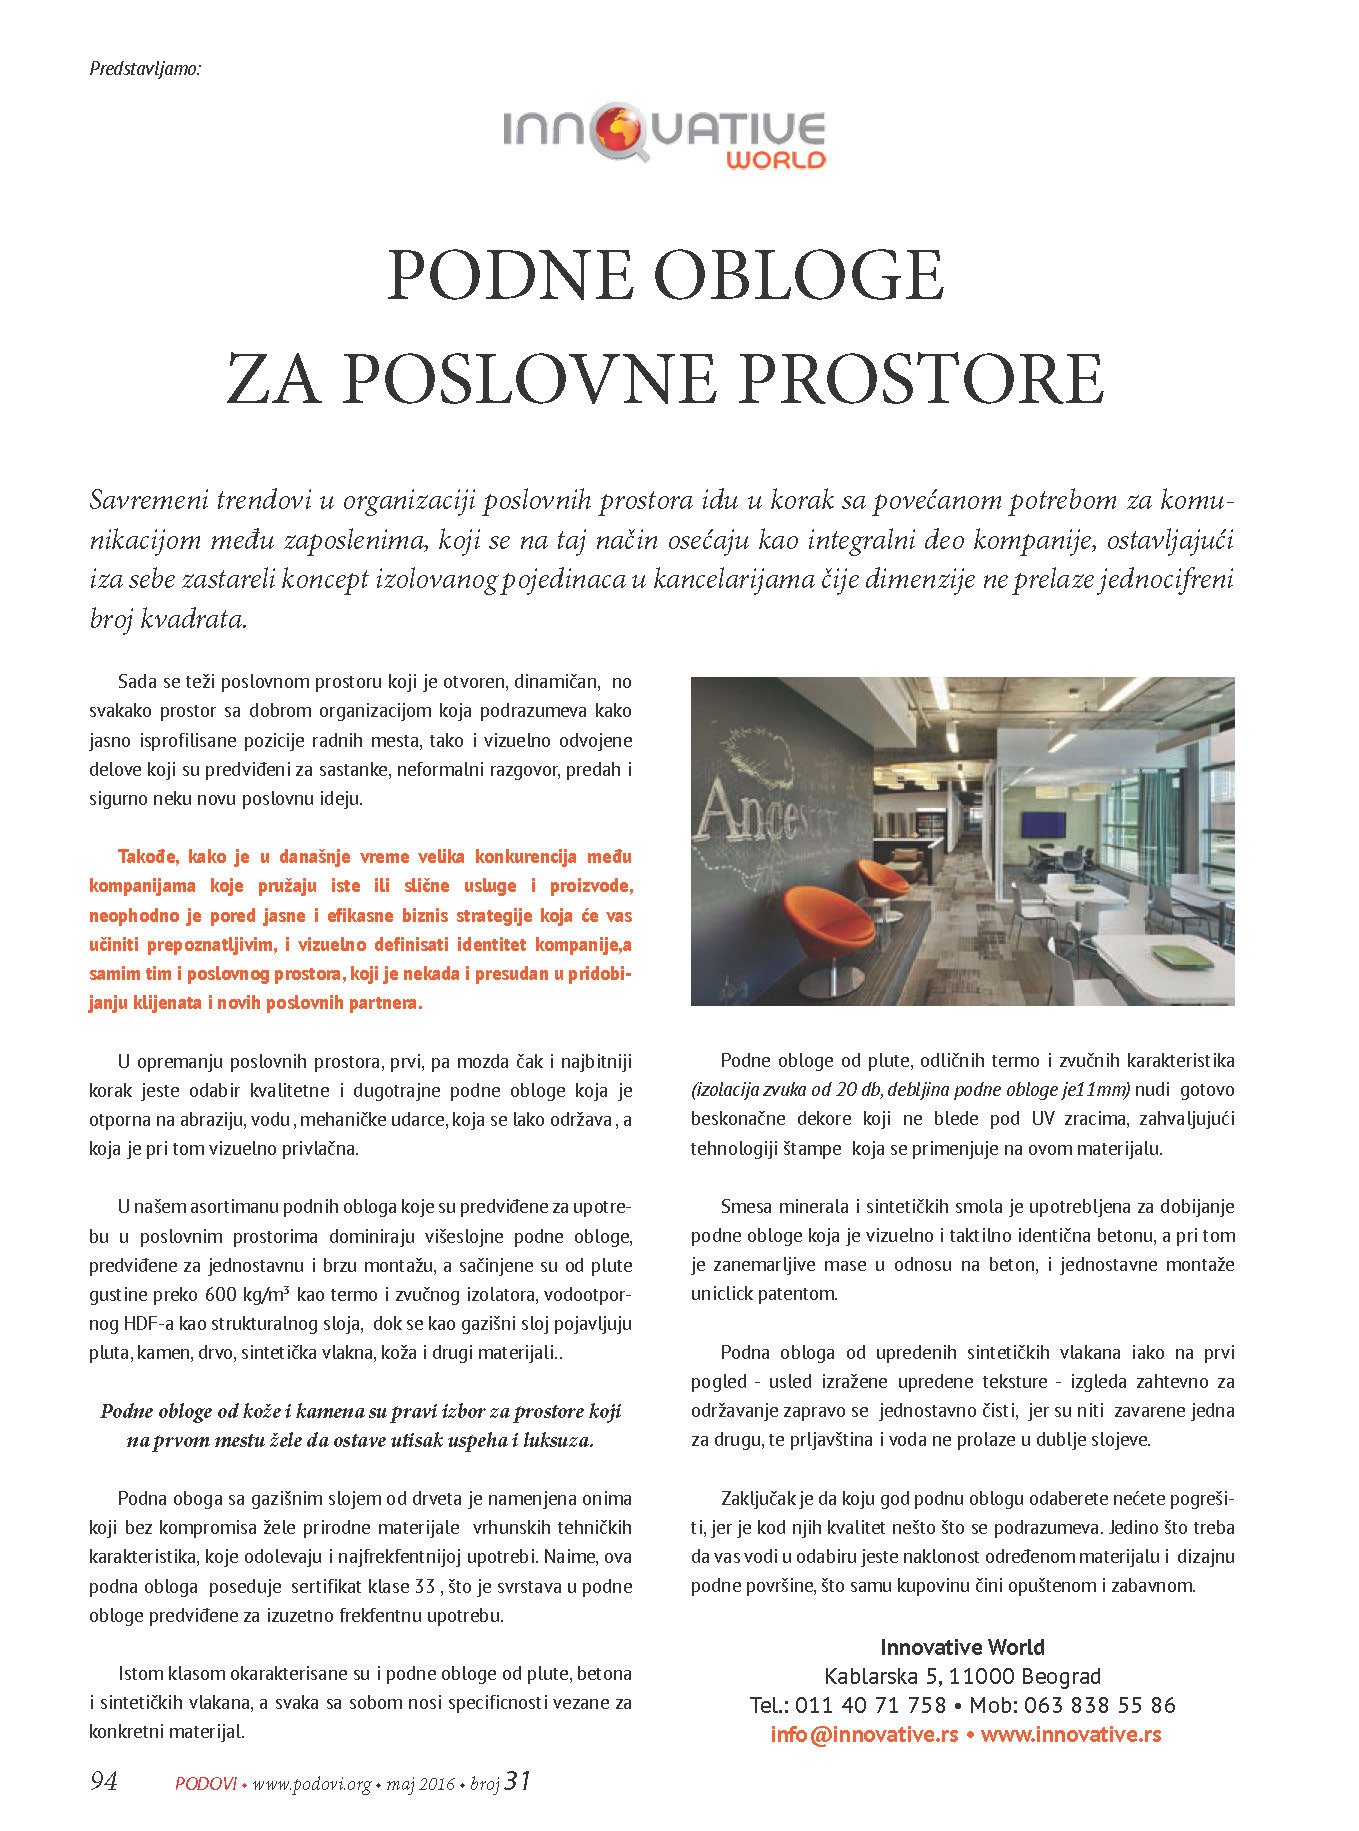 Innovative World – Podne obloge za poslovne prostore